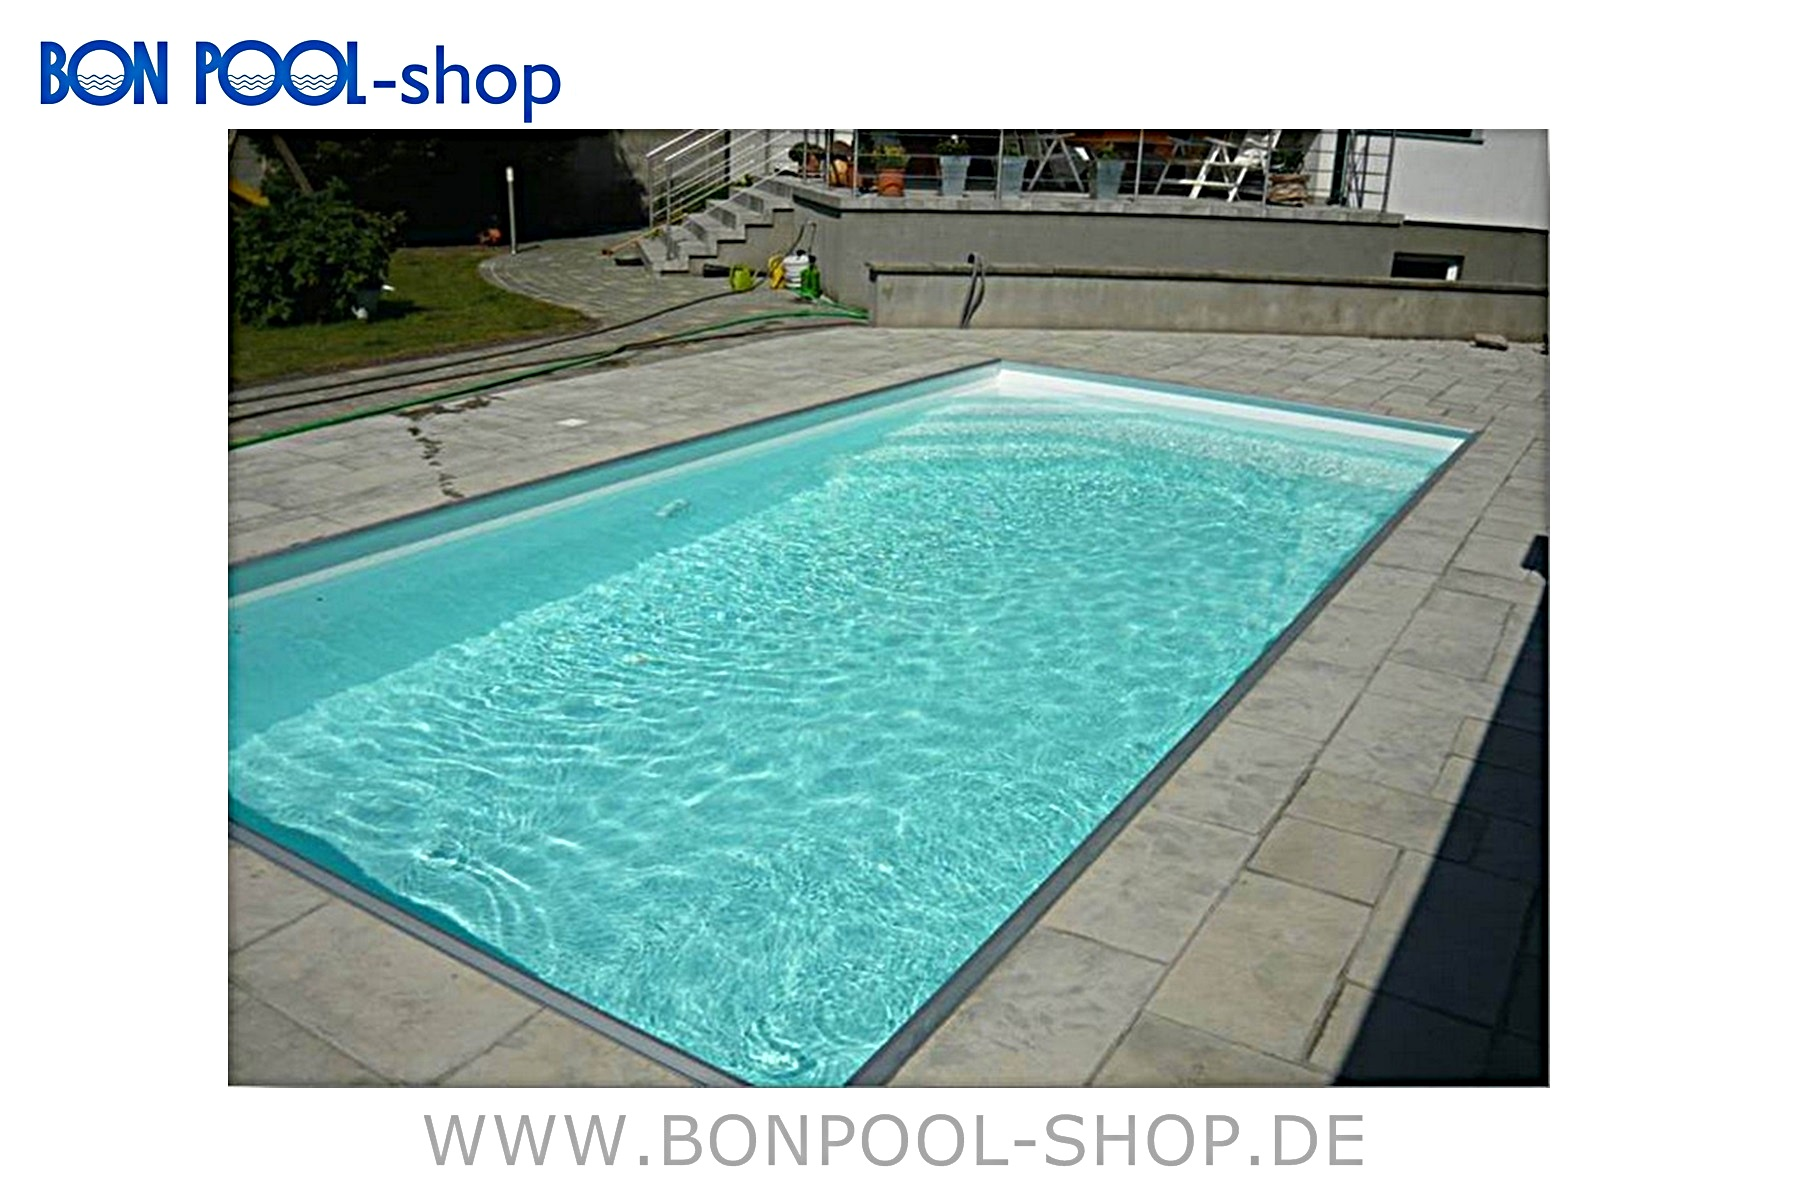 pp kunststoff rechteckbecken 6 5x3 5x1 5m bon pool. Black Bedroom Furniture Sets. Home Design Ideas